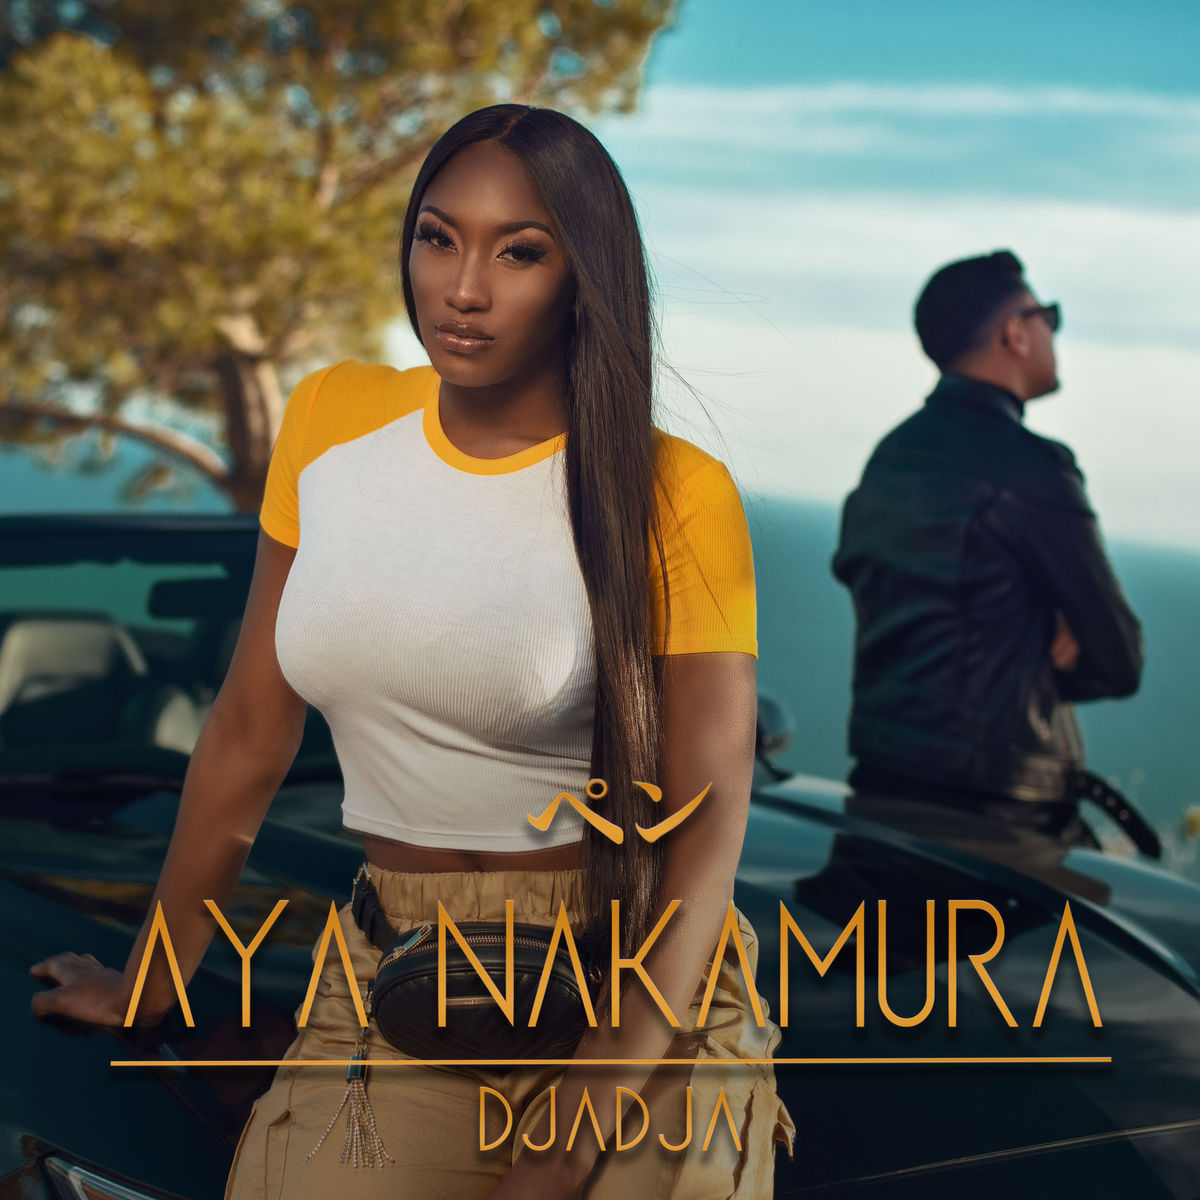 The Netherlands | Aya Nakamura is topping the Dutch Charts - Le